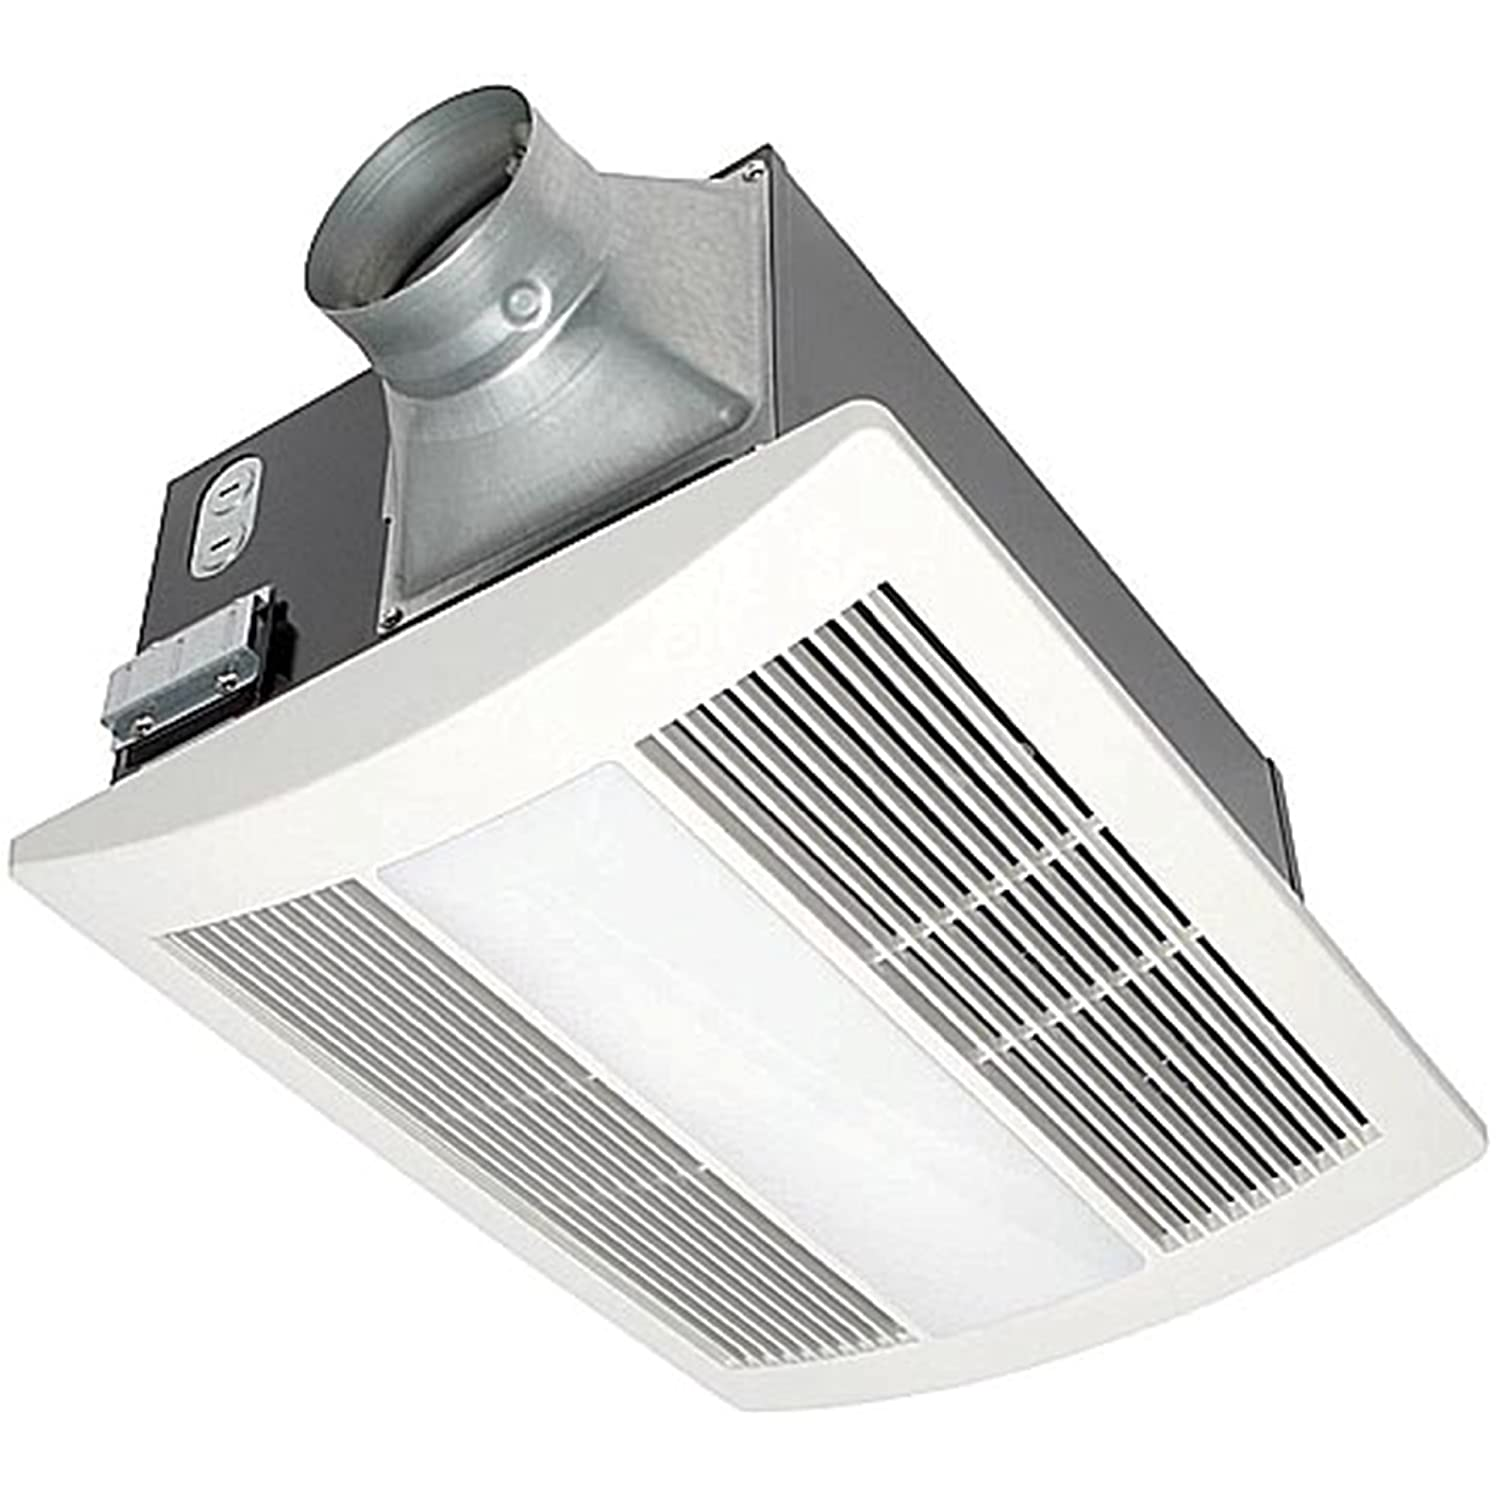 Modern bathroom vent fan - Panasonic Fv 11vhl2 Whisperwarm 110 Cfm Ceiling Mounted Fan Heat Light Night Light Combination White Heaters Amazon Com